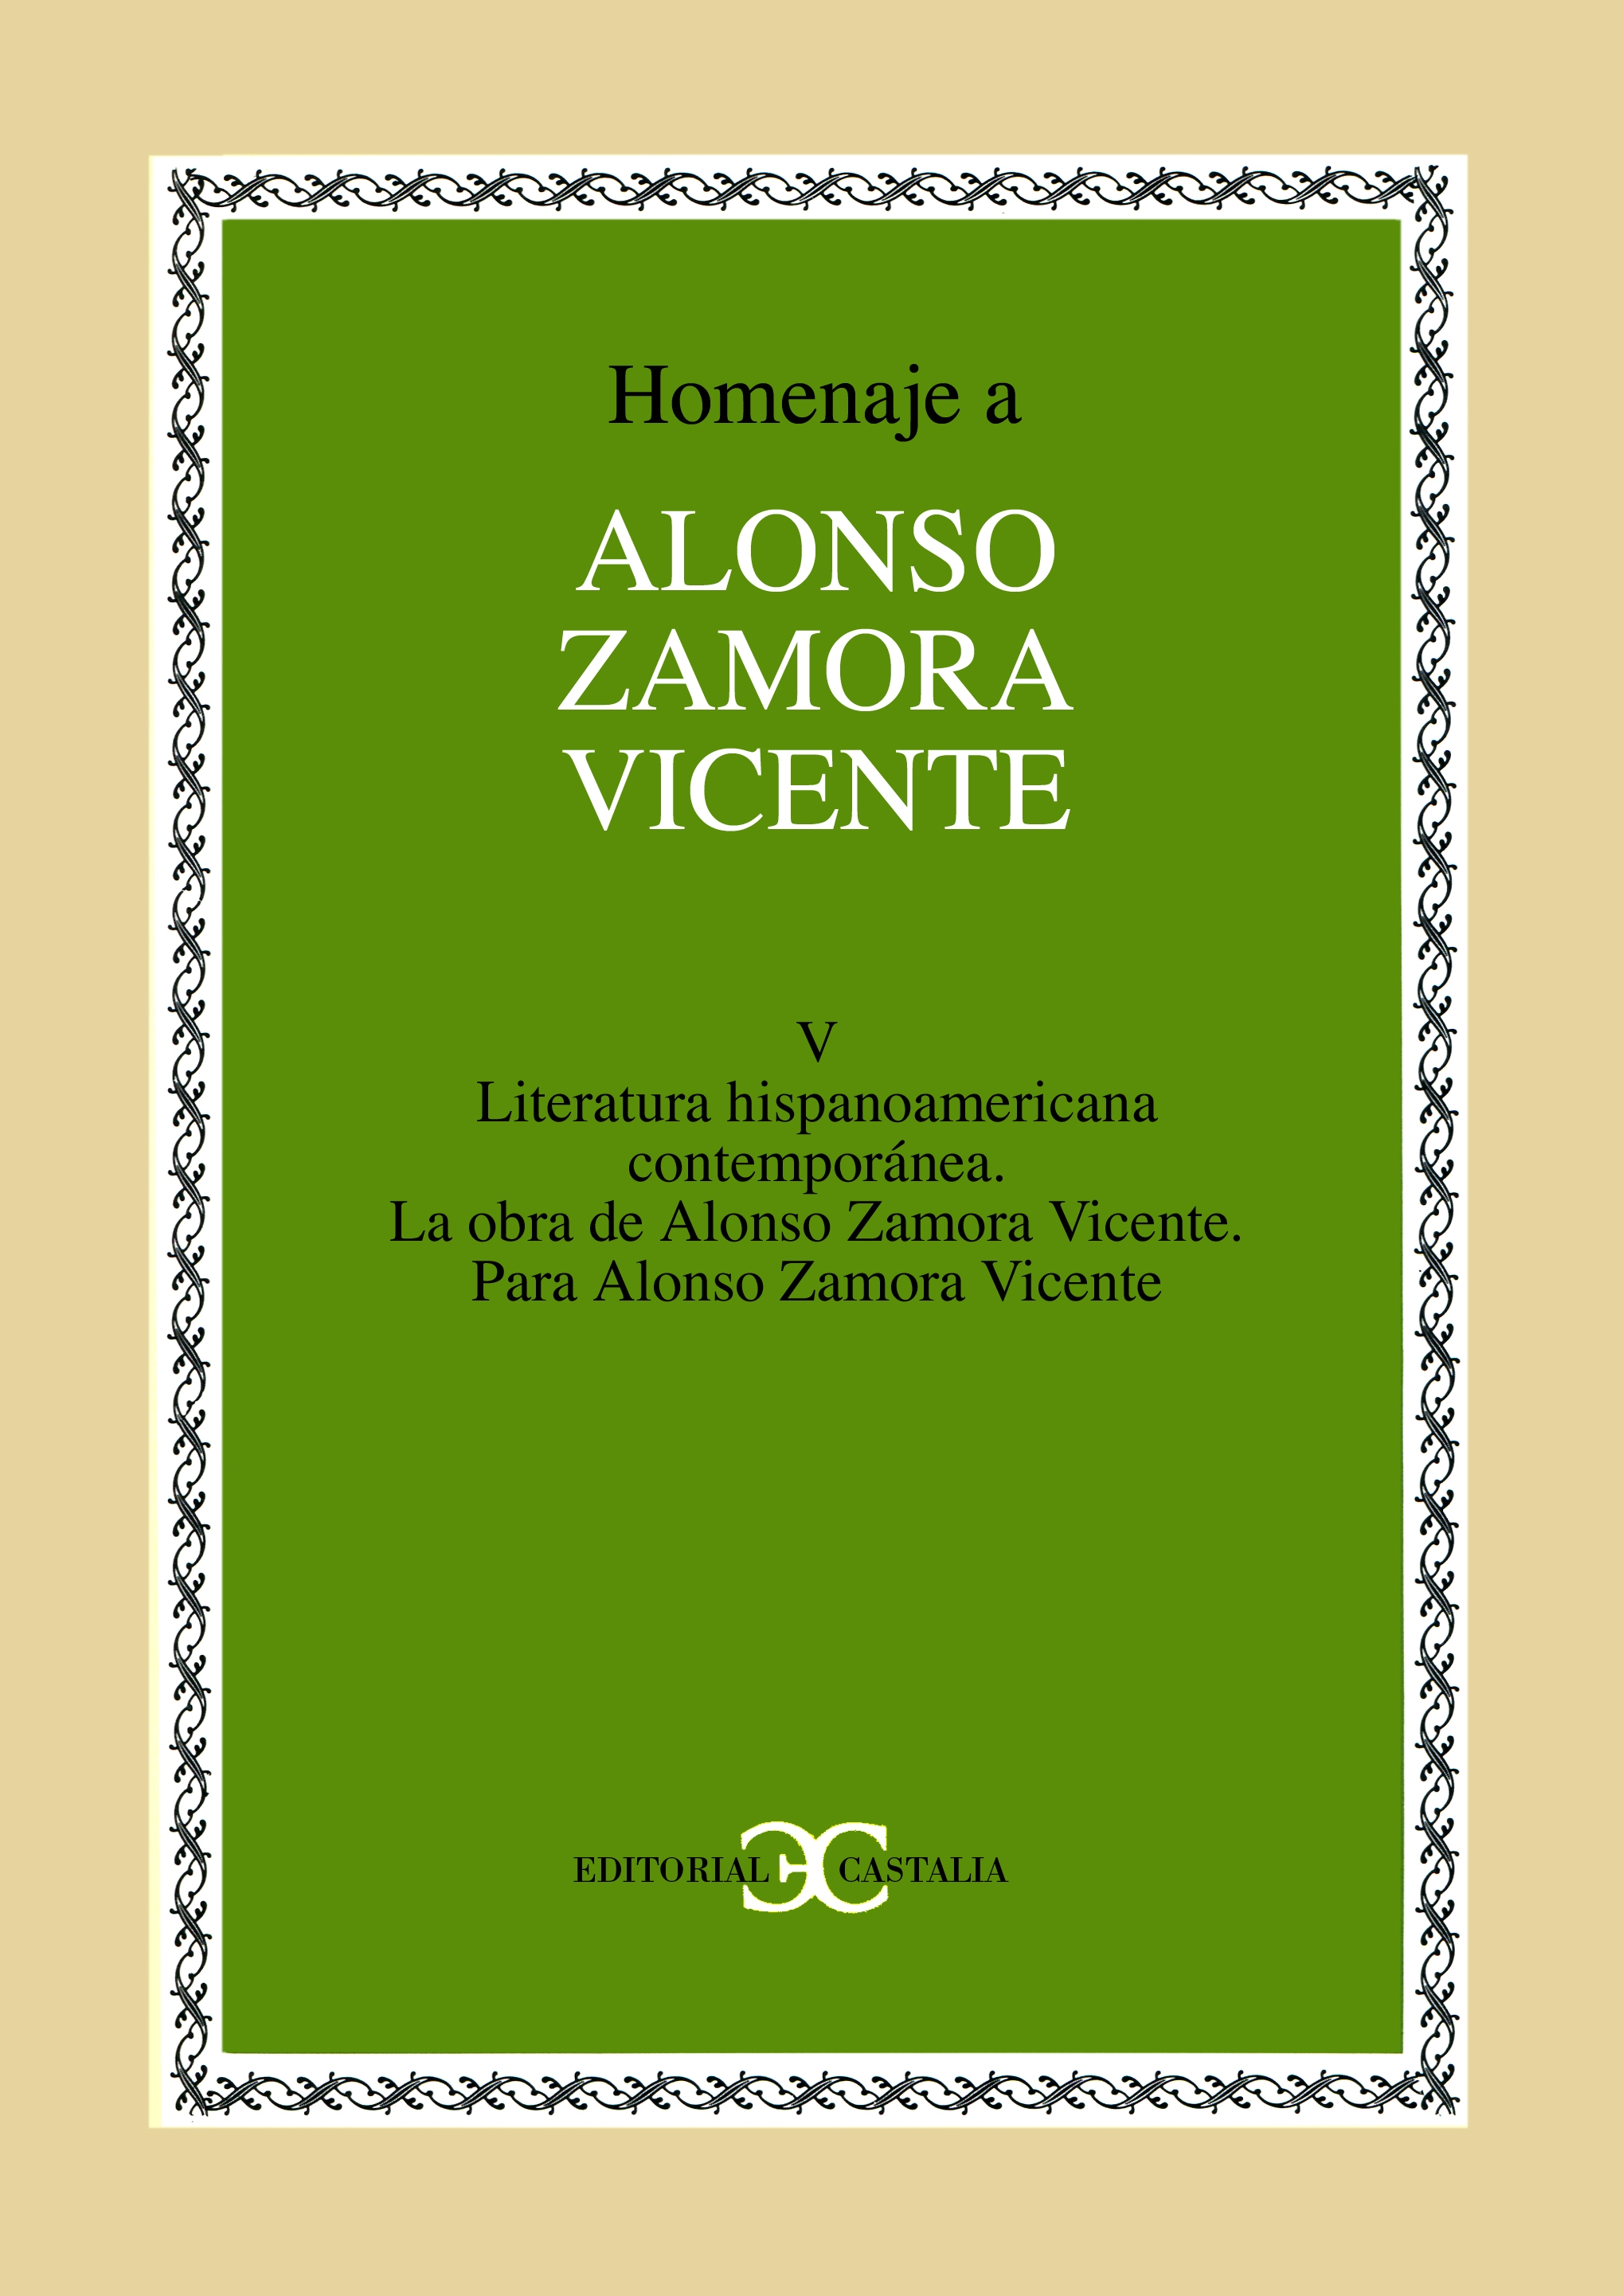 Homenaje a Alonso Zamora Vicente. Volumen V